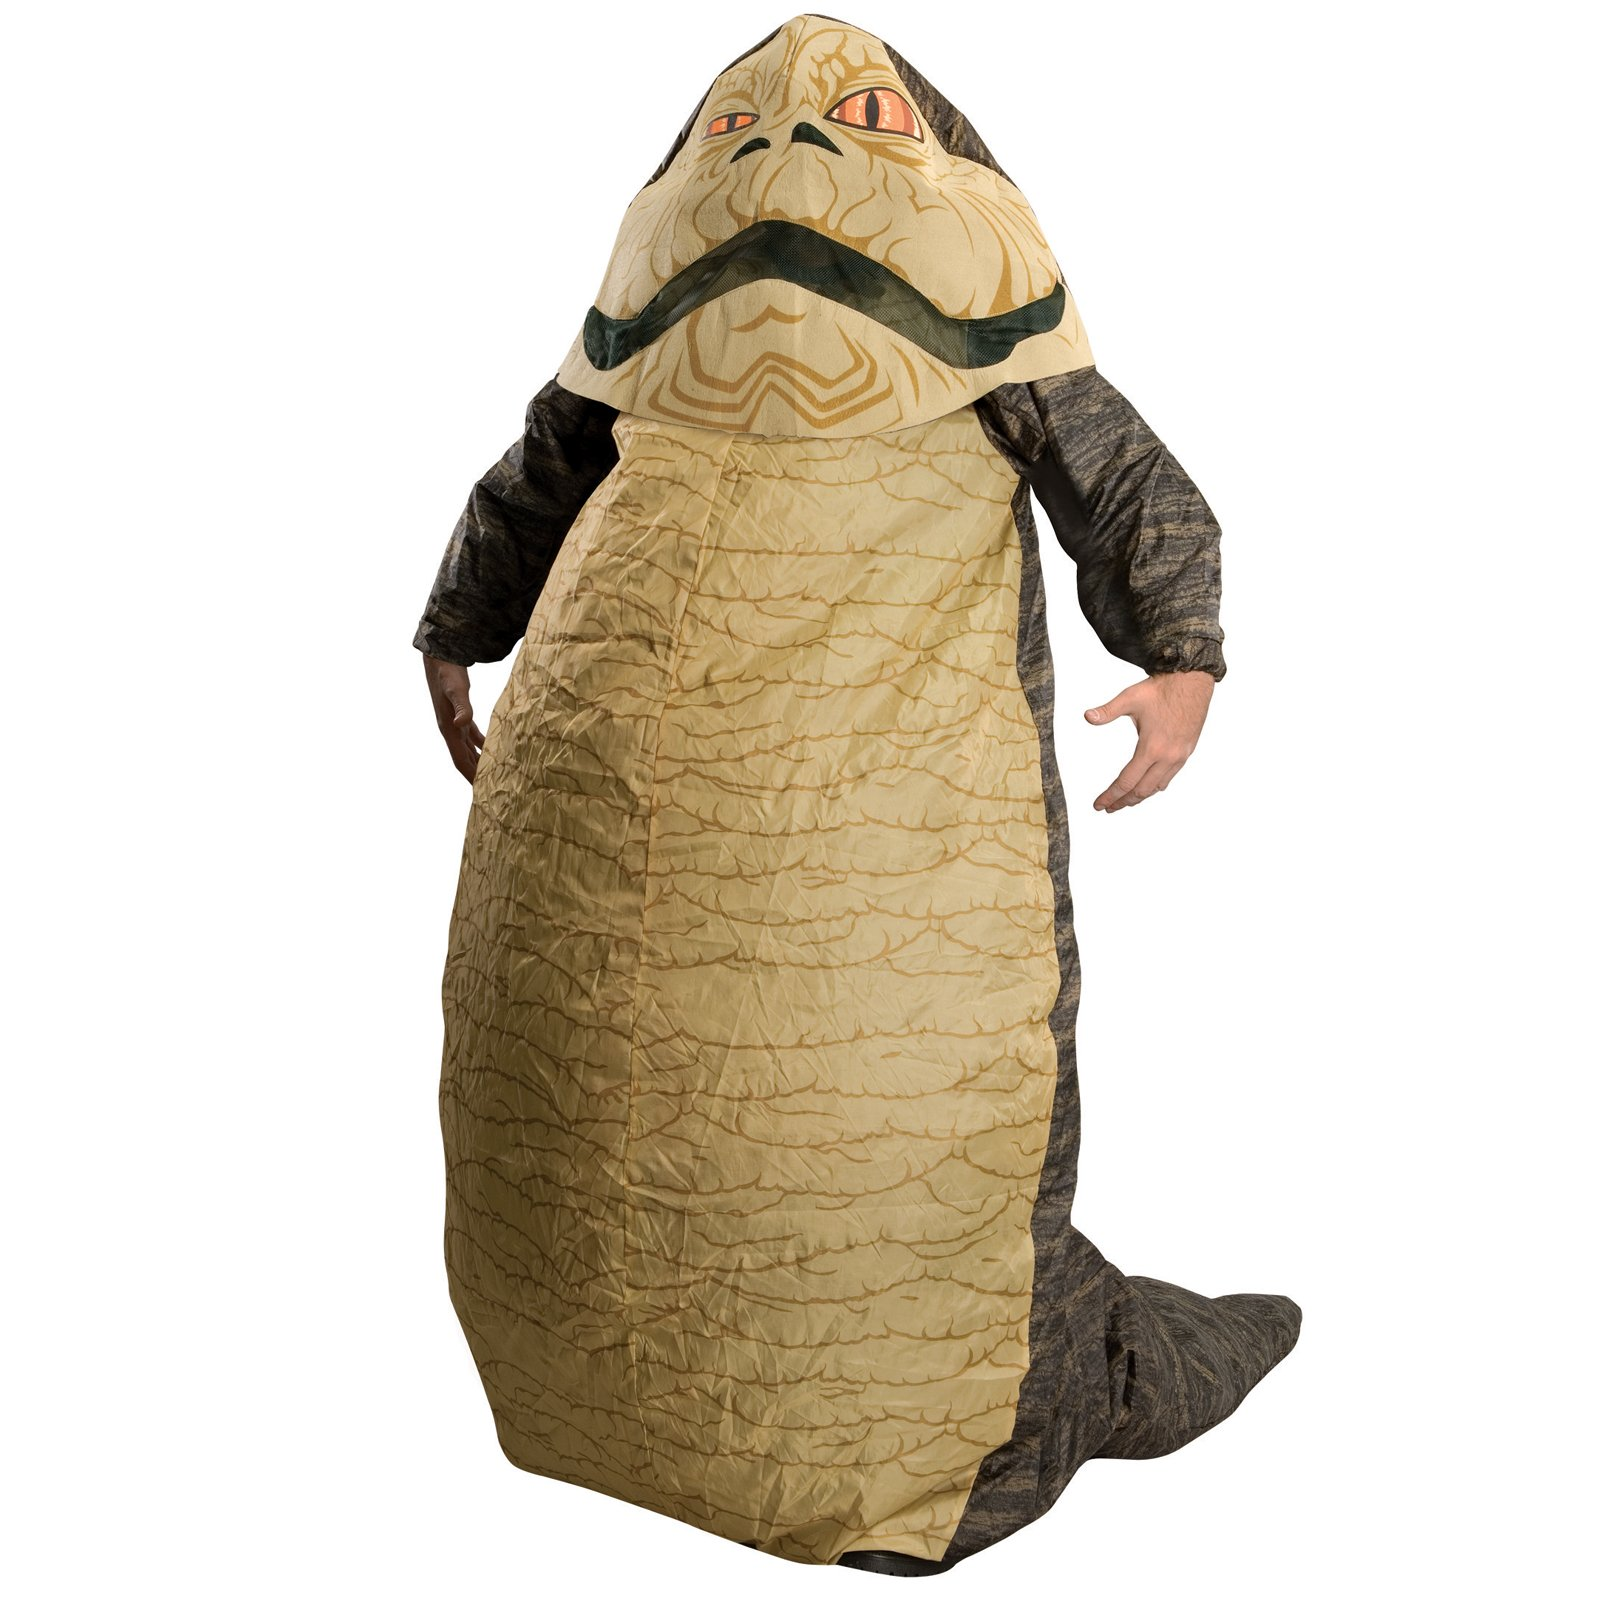 Jabba The Hutt Inflatable Adult Halloween Costume